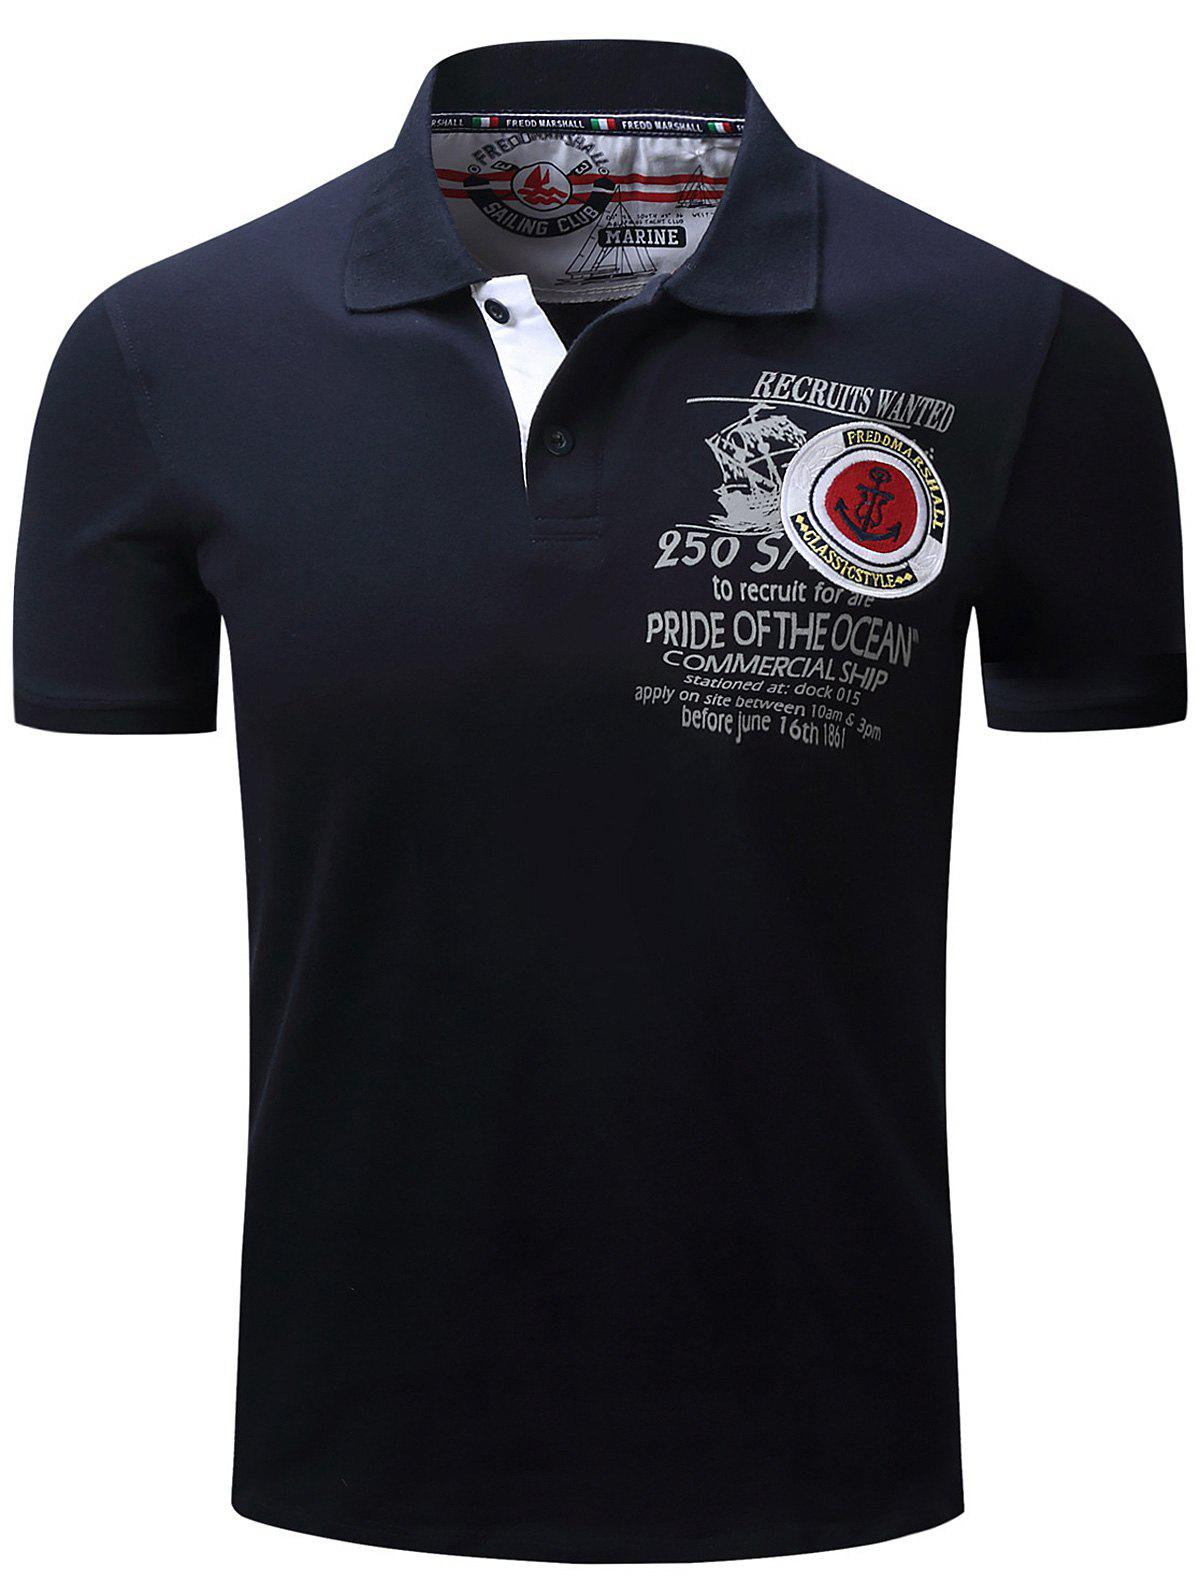 Image of Anchor Embroidered Graphic Print Polo T-shirt